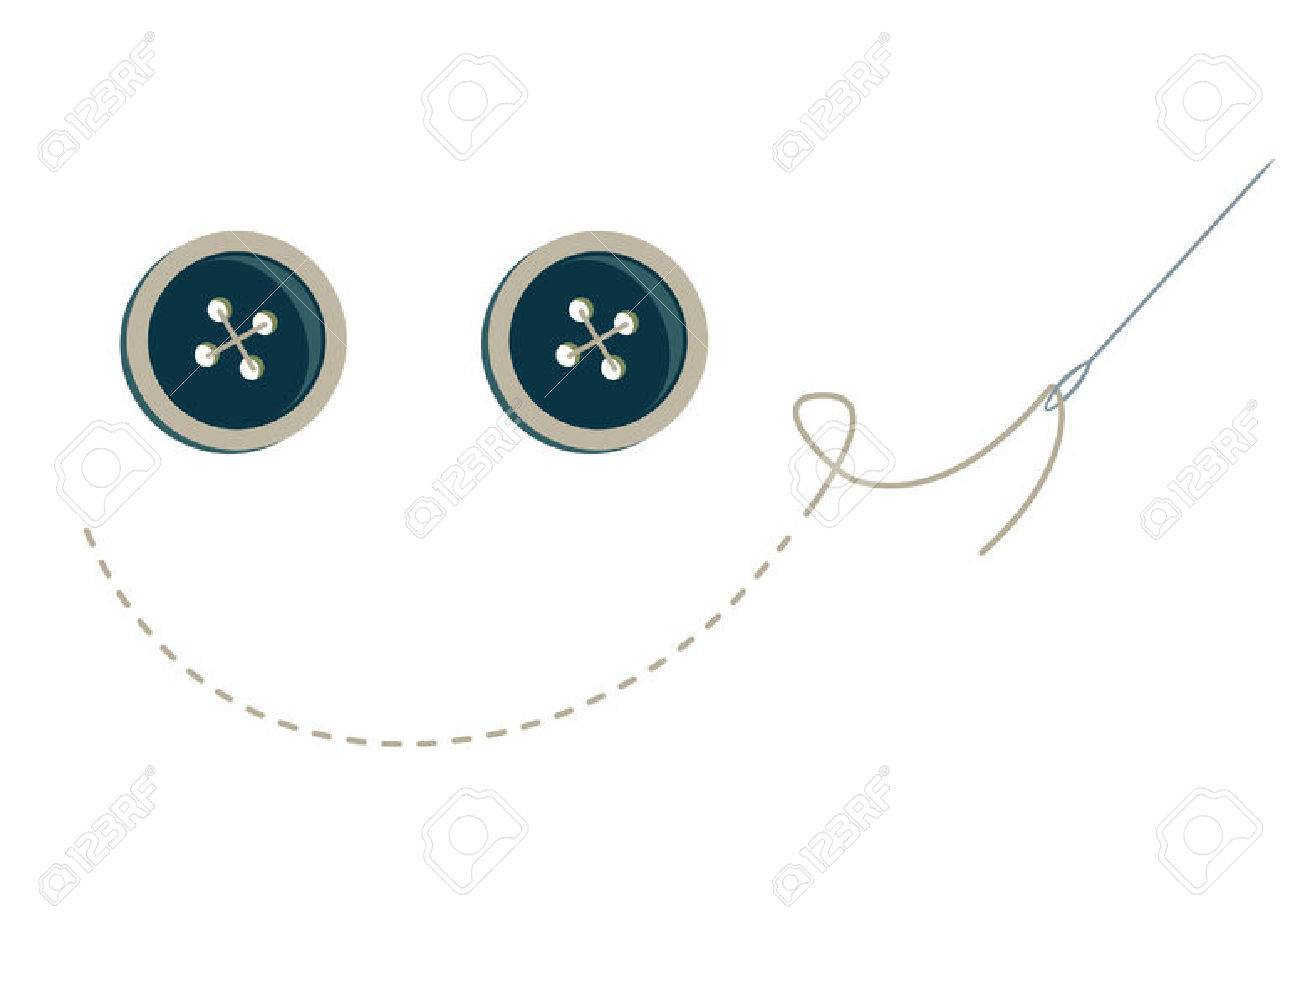 blue buttons with stitching and needle making a smiley face Stock Vector - 6468196